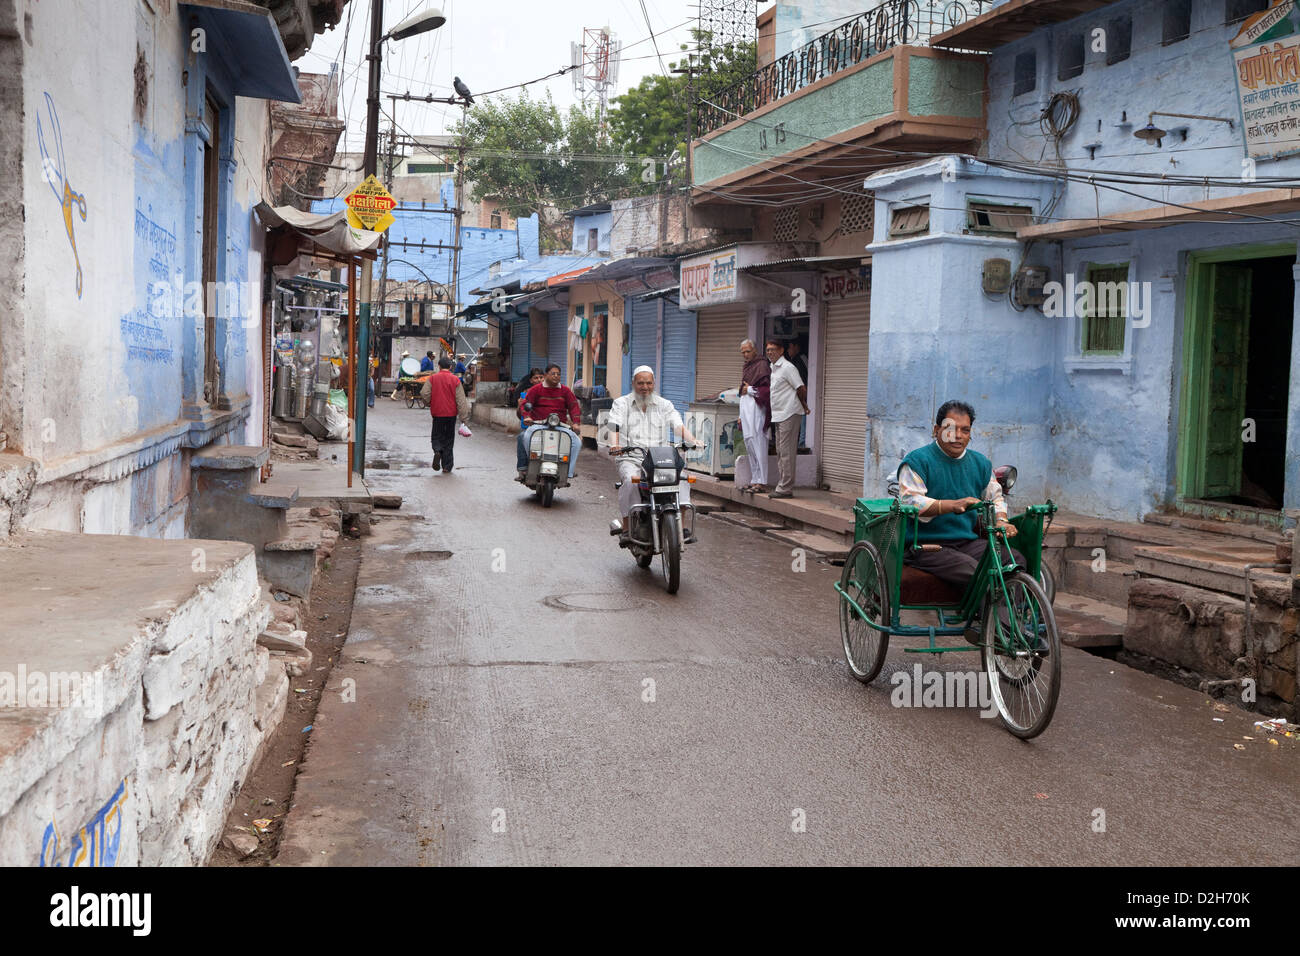 India, Rajasthan, Jodhpur street scene showing man using commonly used tricycle for people with polio in India - Stock Image